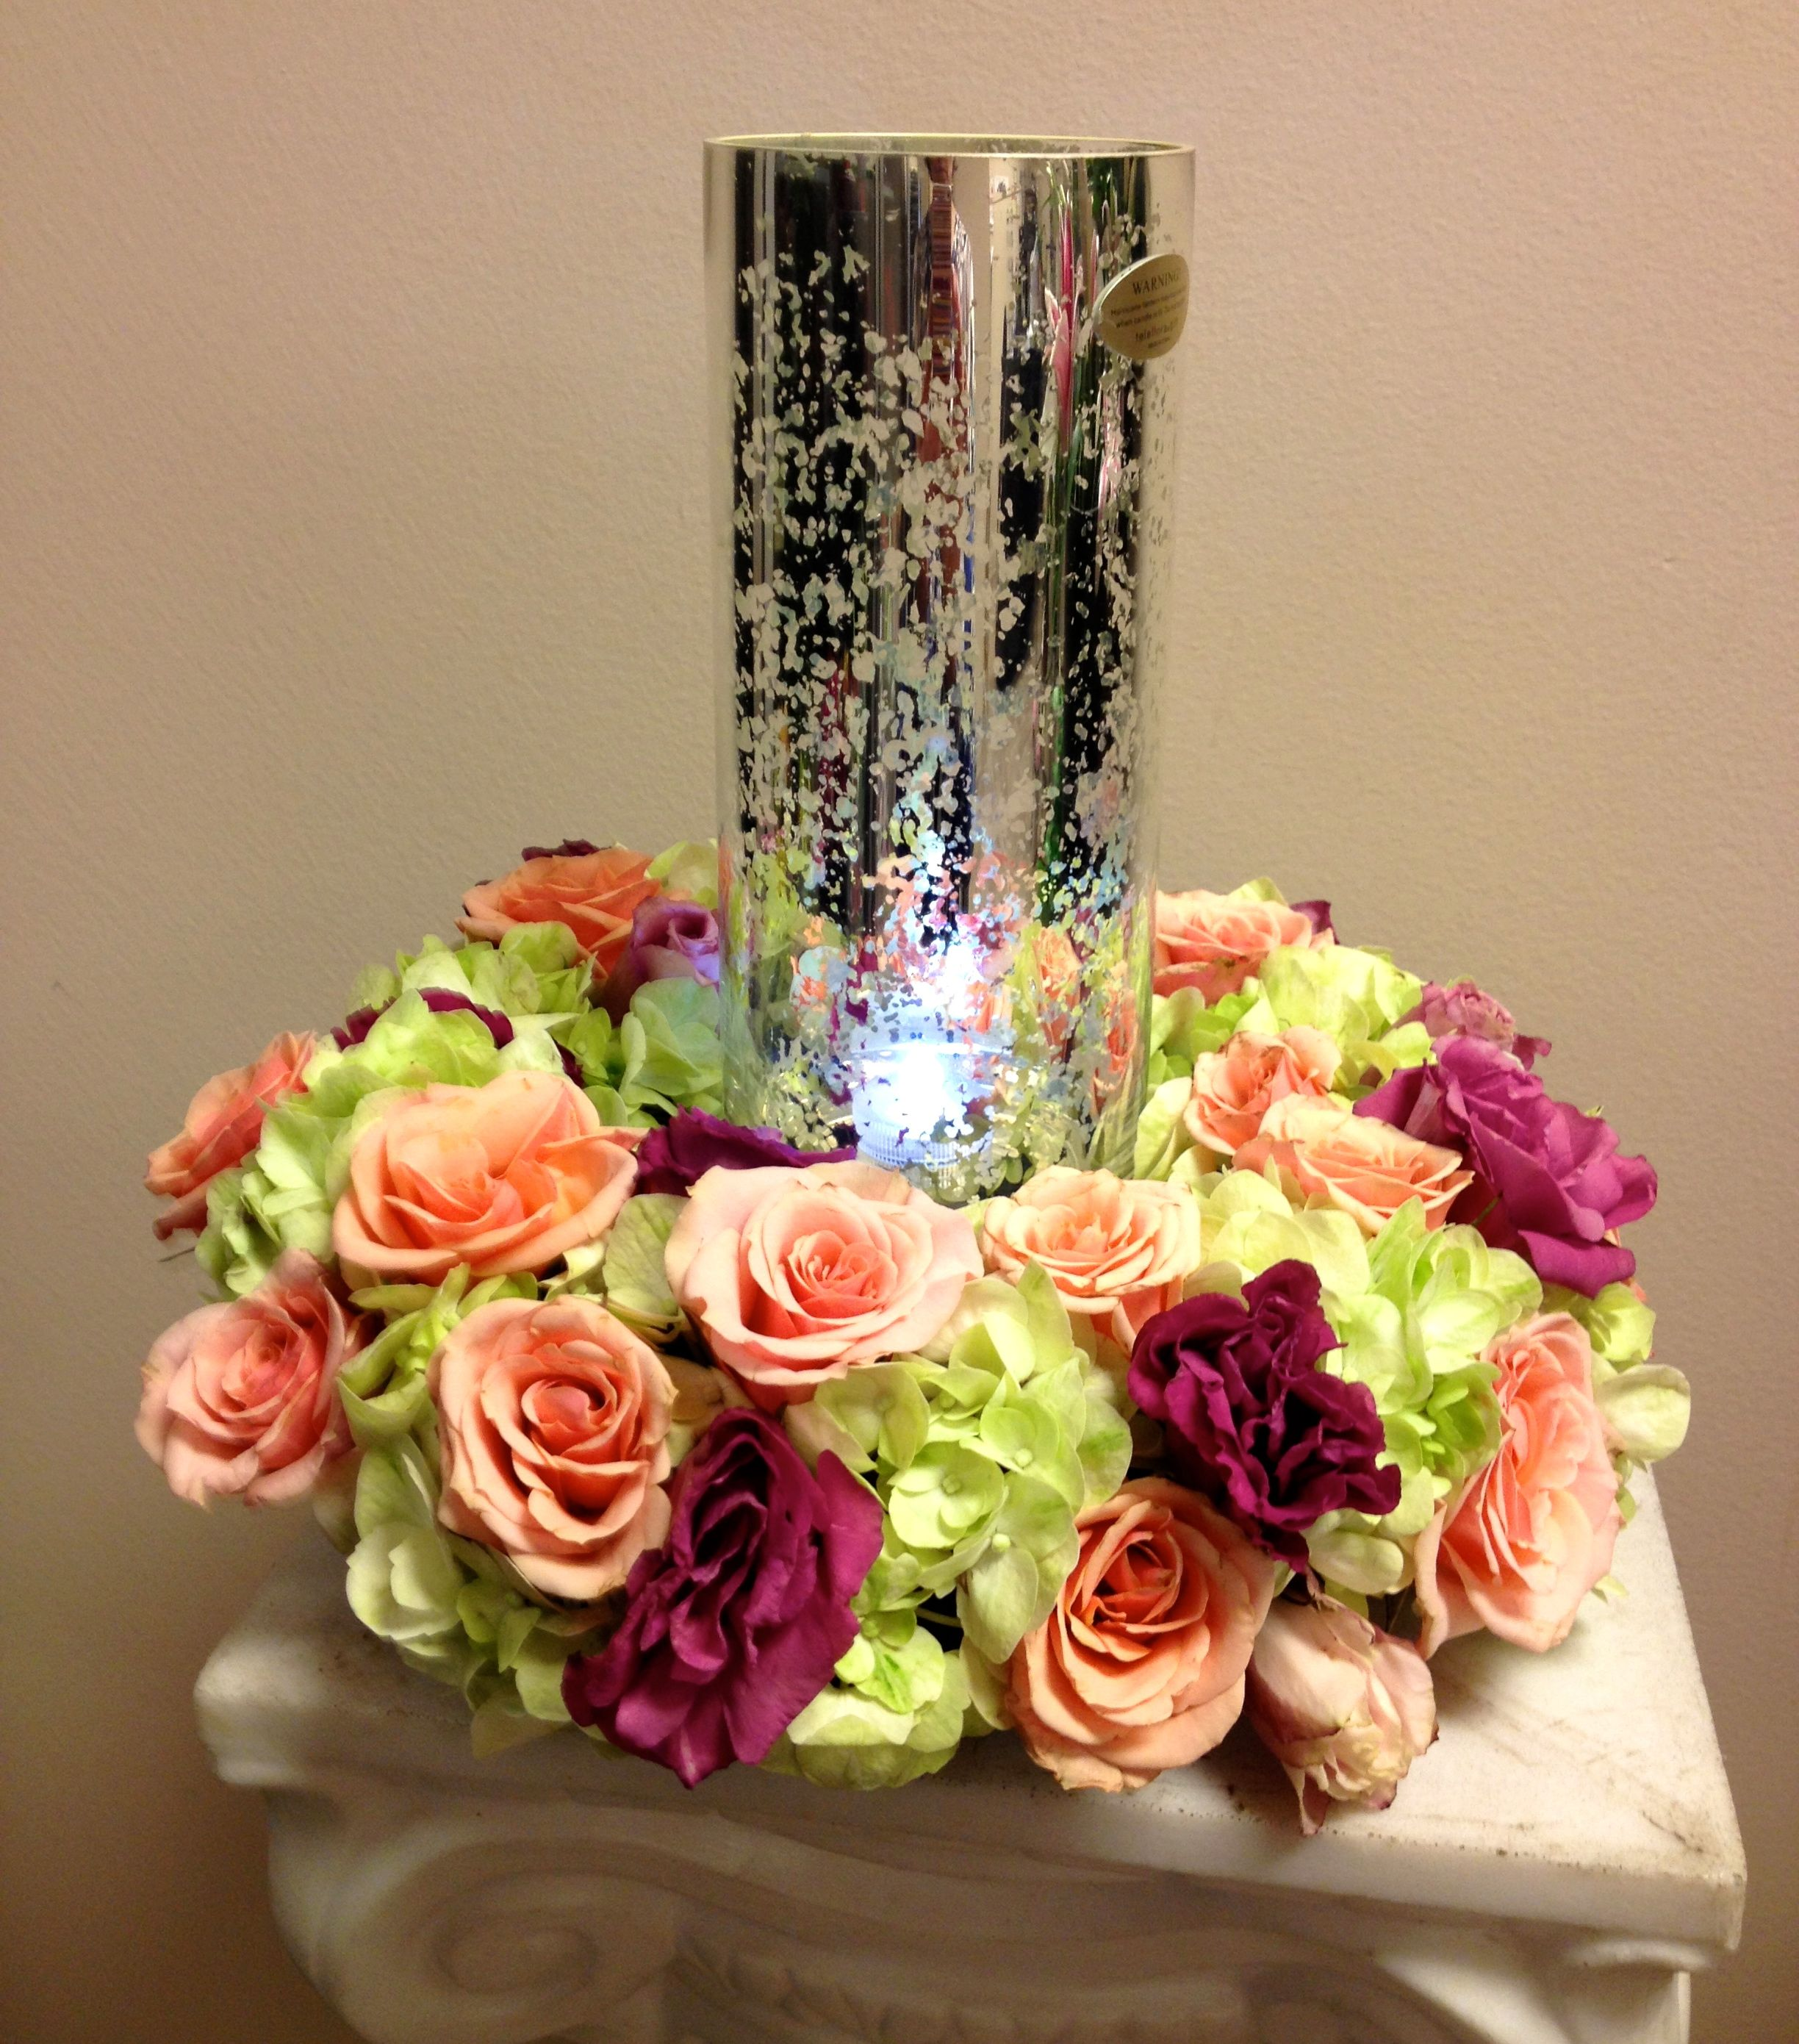 Candle Flower Centerpieces Wedding: Lovely Wreath Of Flowers Around A Glass Hurricane Candle